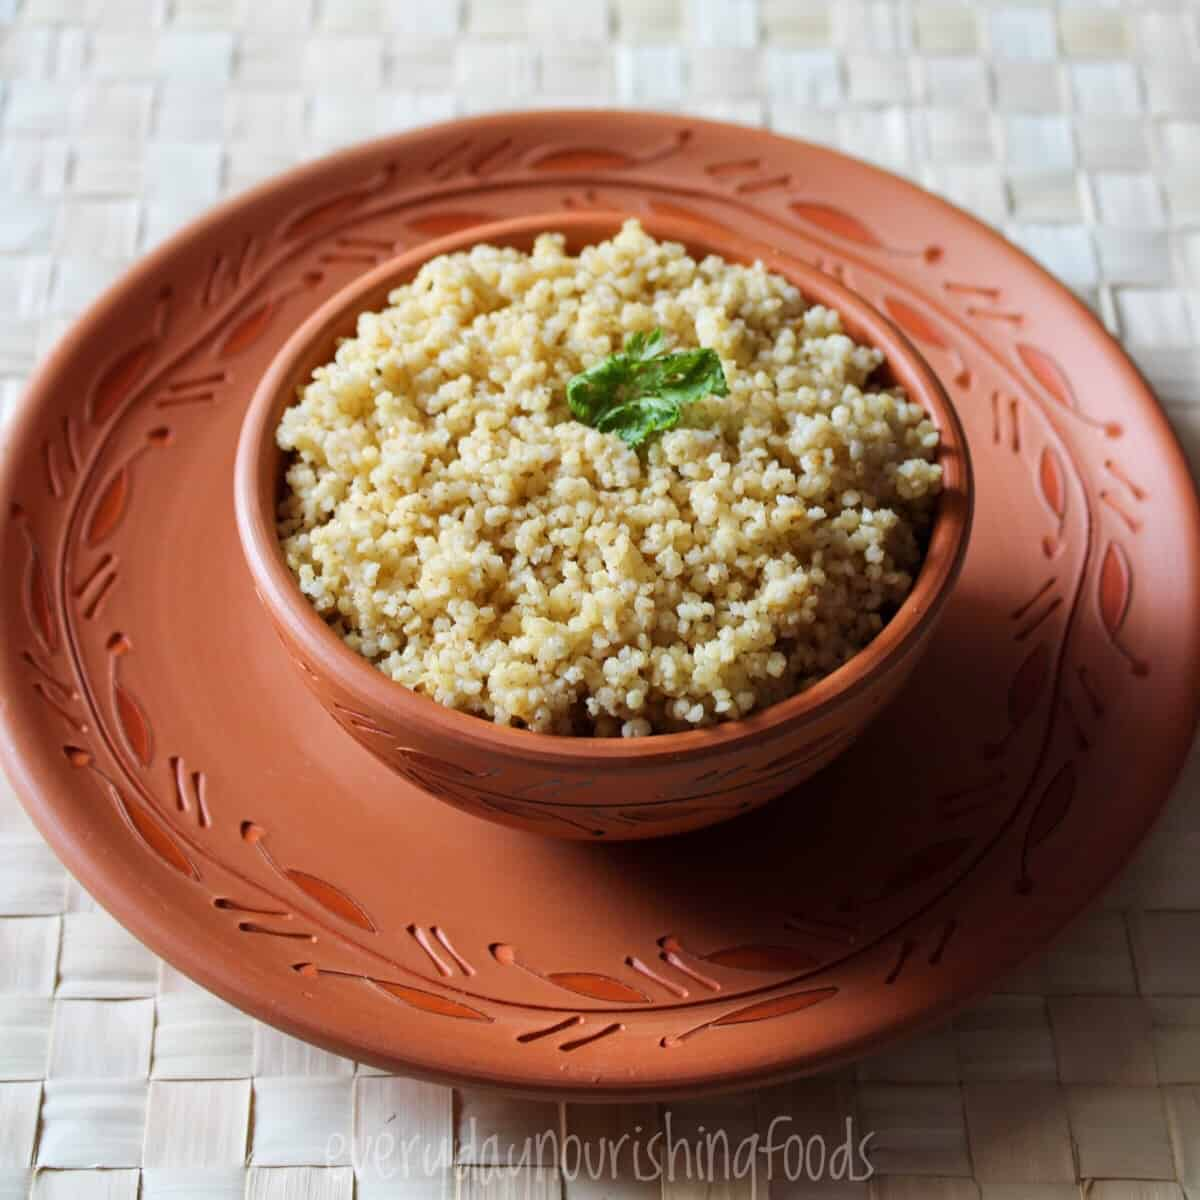 cooked millet in a bowl